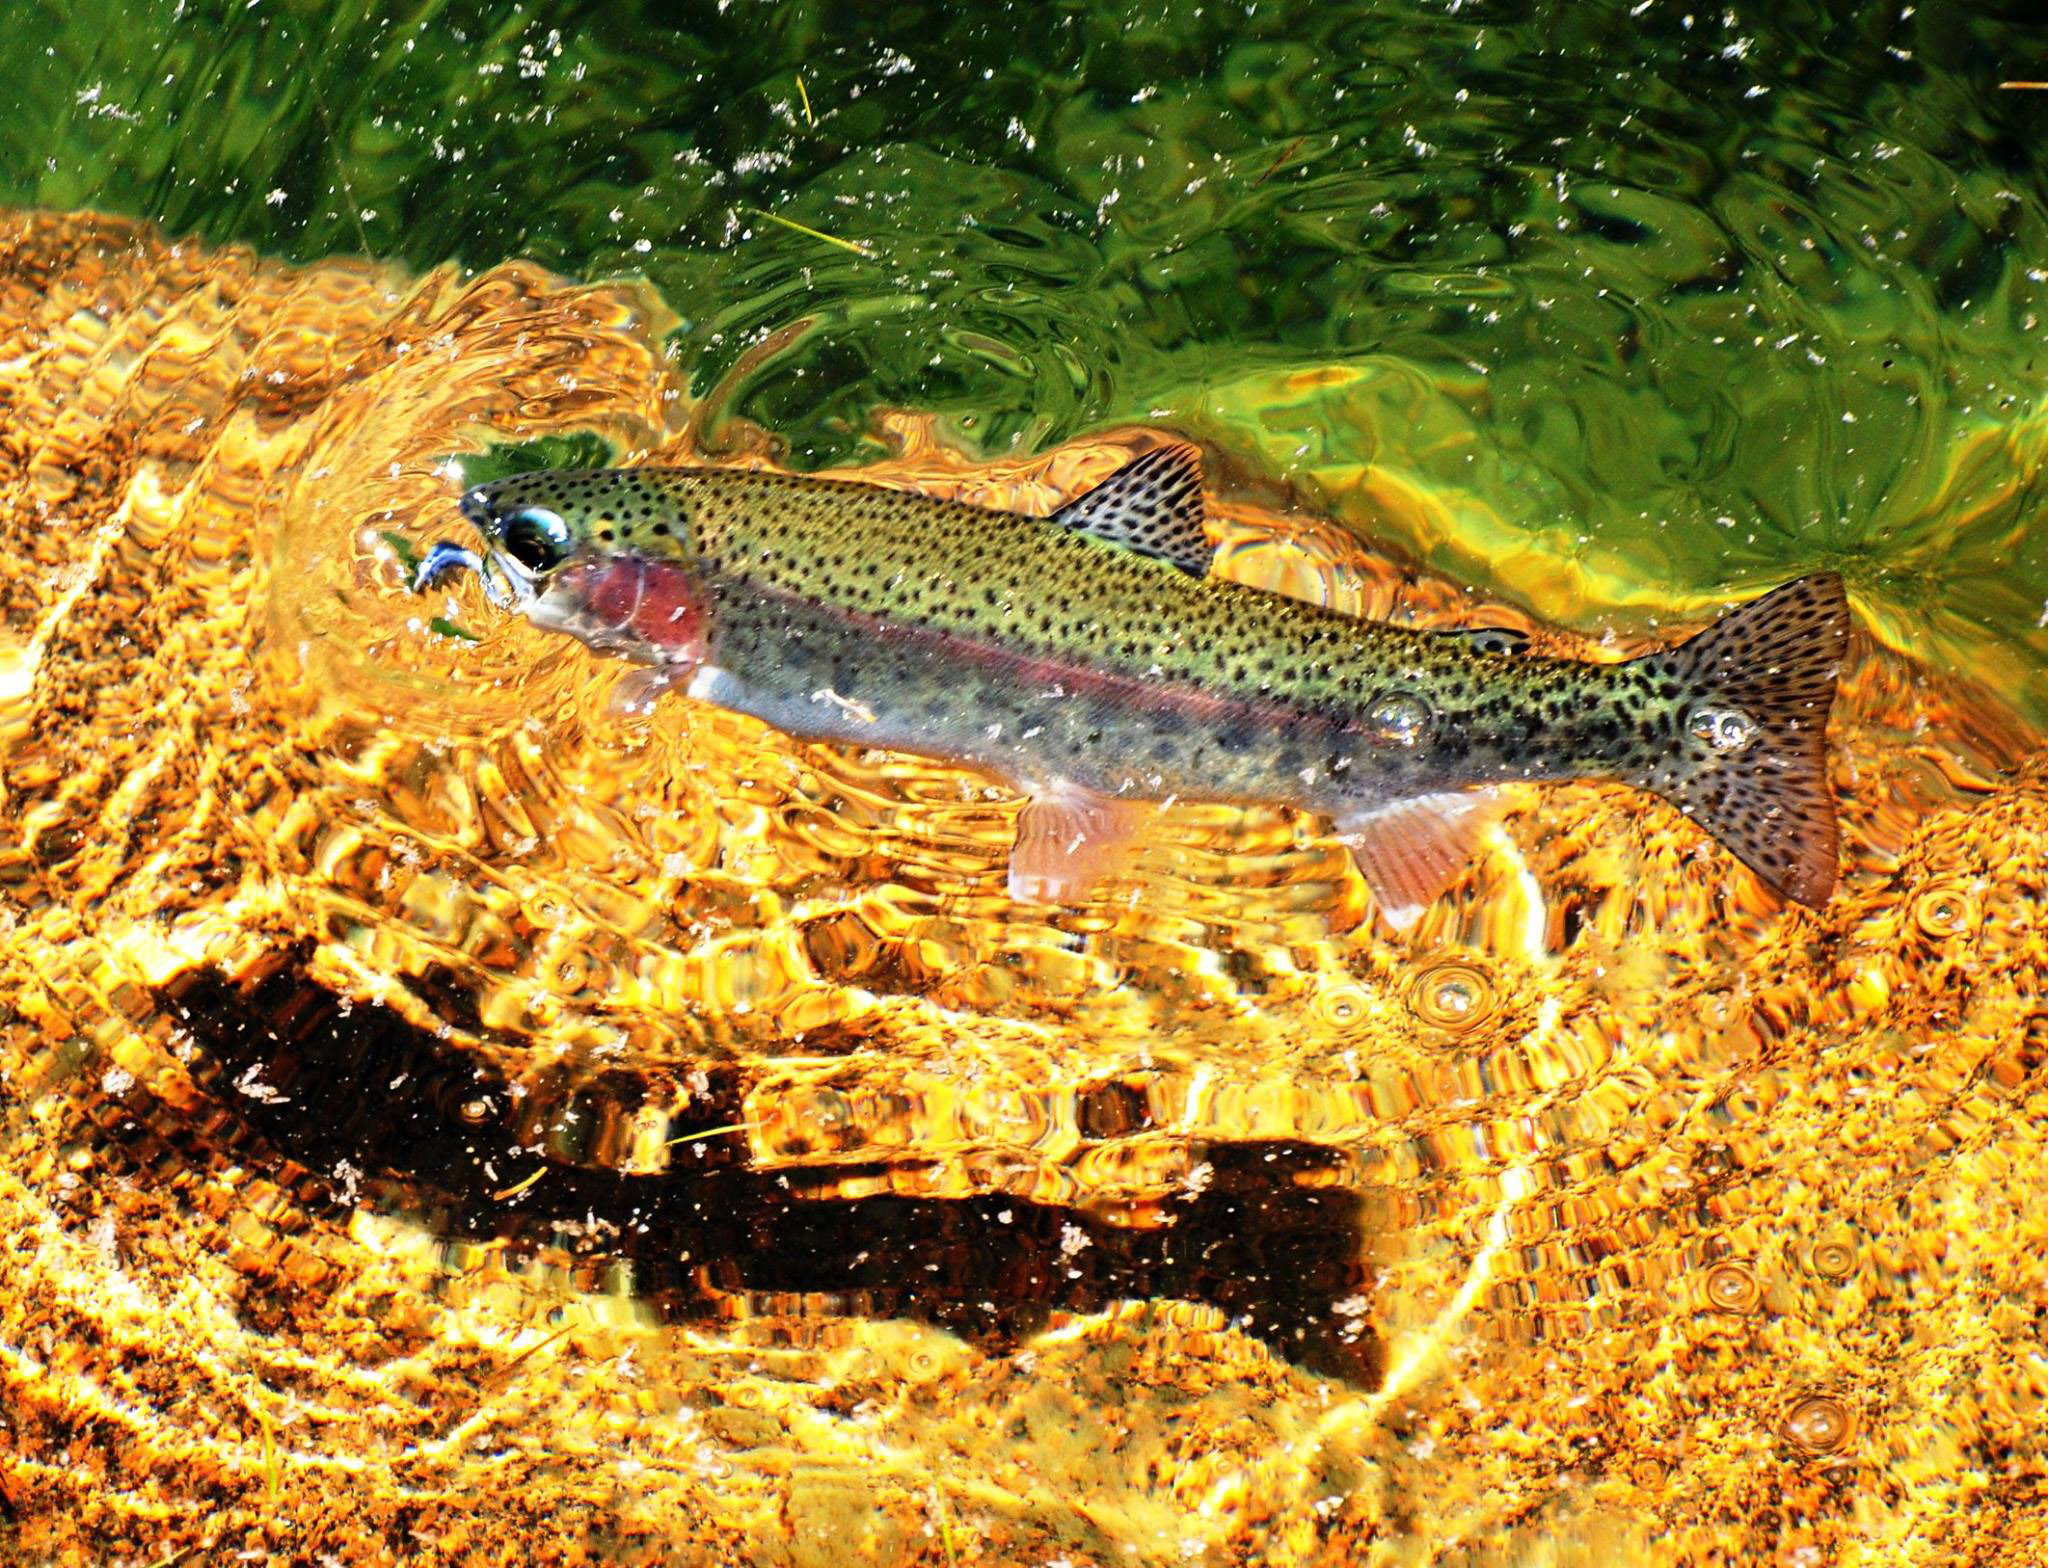 Rainbow trout. Photo by: Andy Harrison.